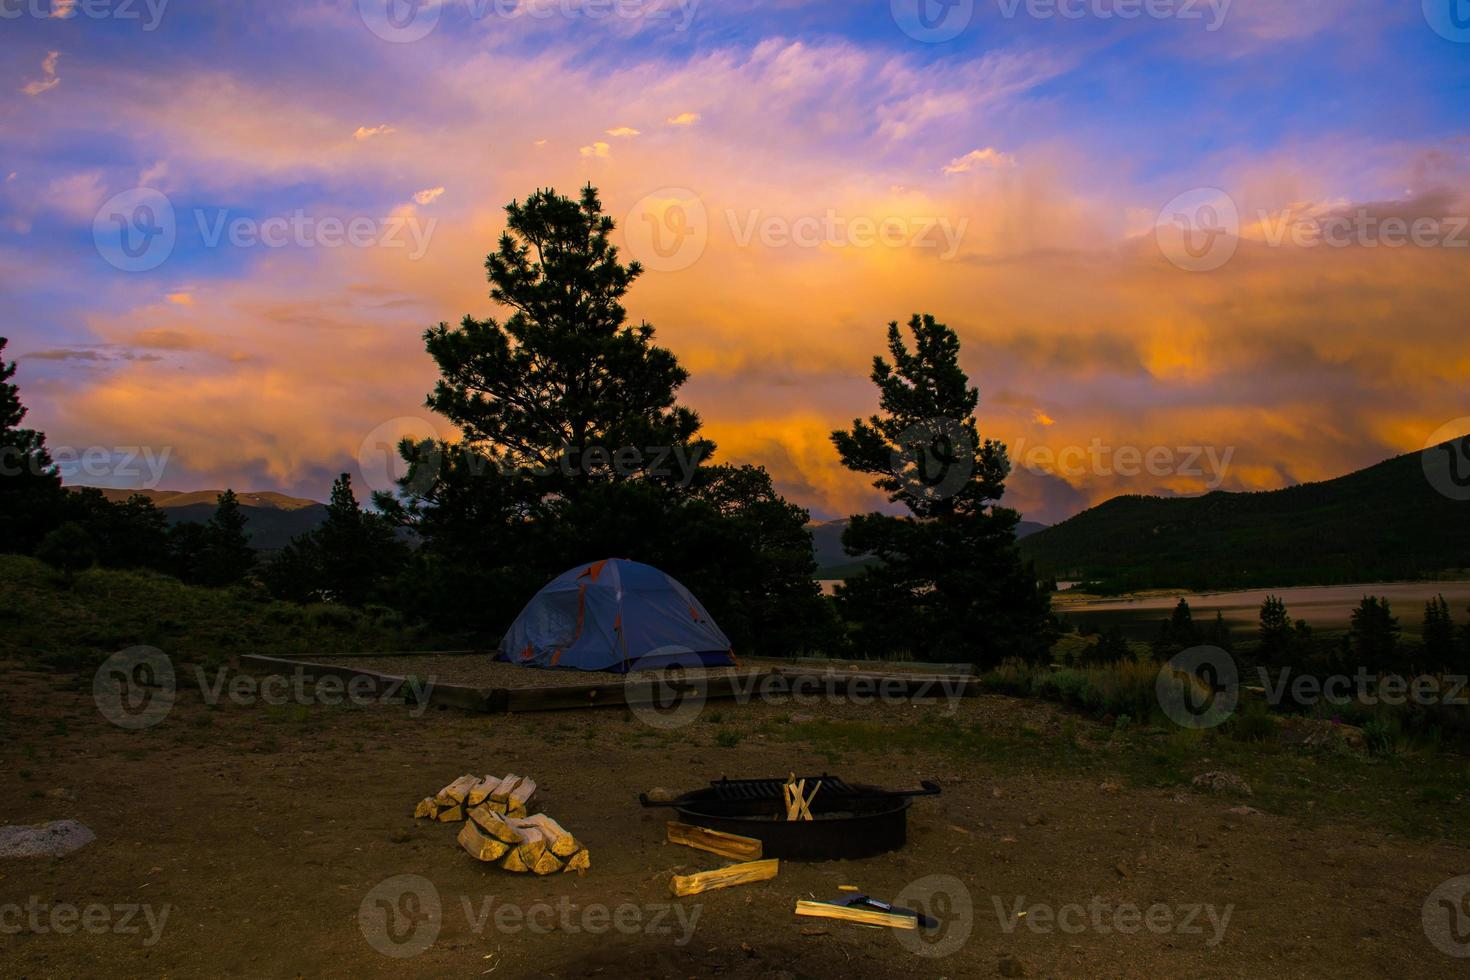 Campfire Sunset in the Amazing Rocky Mountains photo